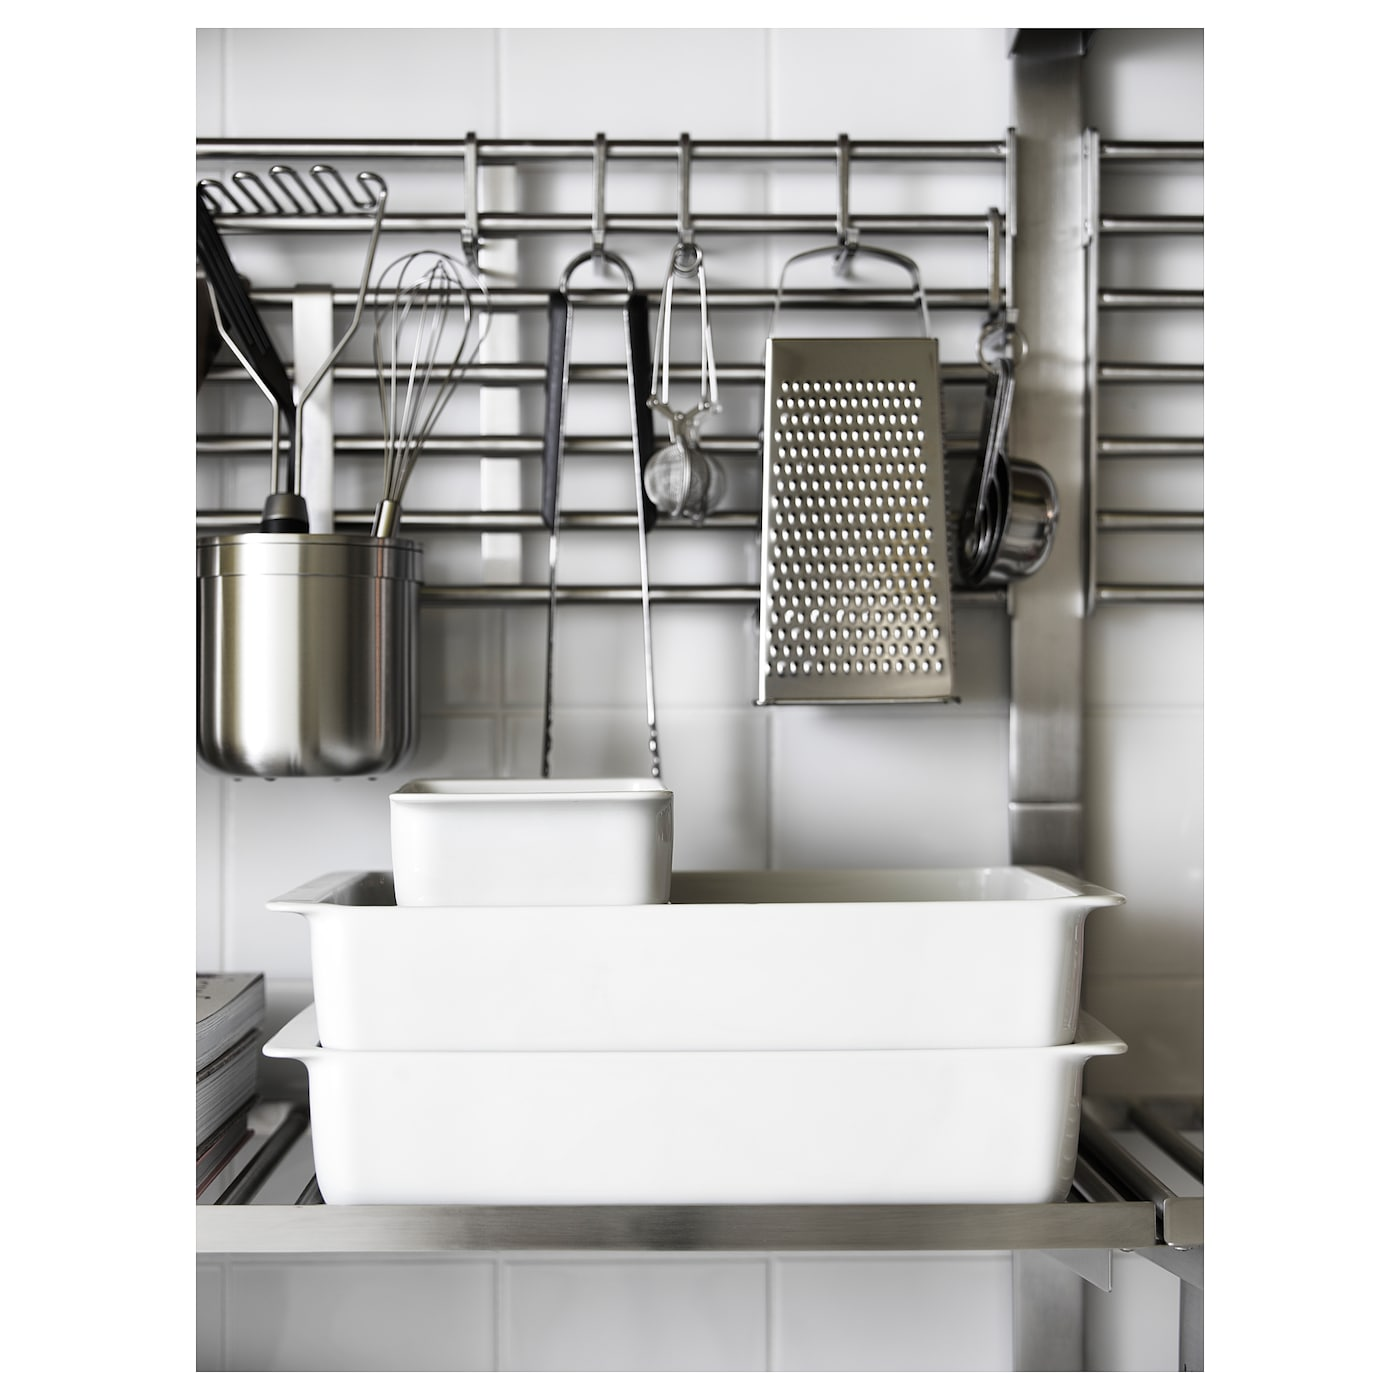 KUNGSFORS Wall rack, stainless steel